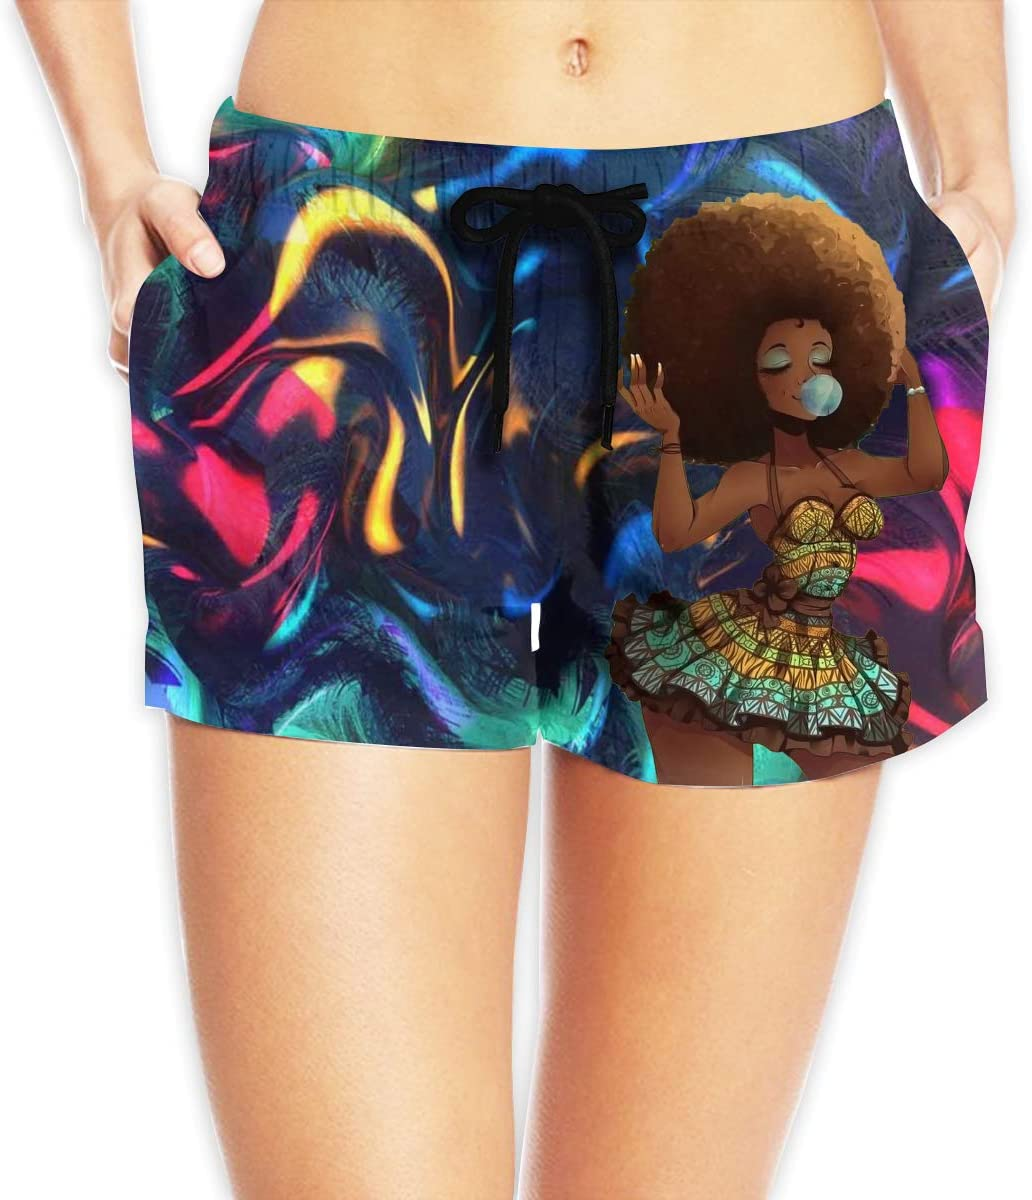 Hdecrr FFRE W Afro Hair African Girl Blowing Bubbles Women's Shorts Summer Quick Dry Drawstring Elastic Waist Casual Beach Shorts